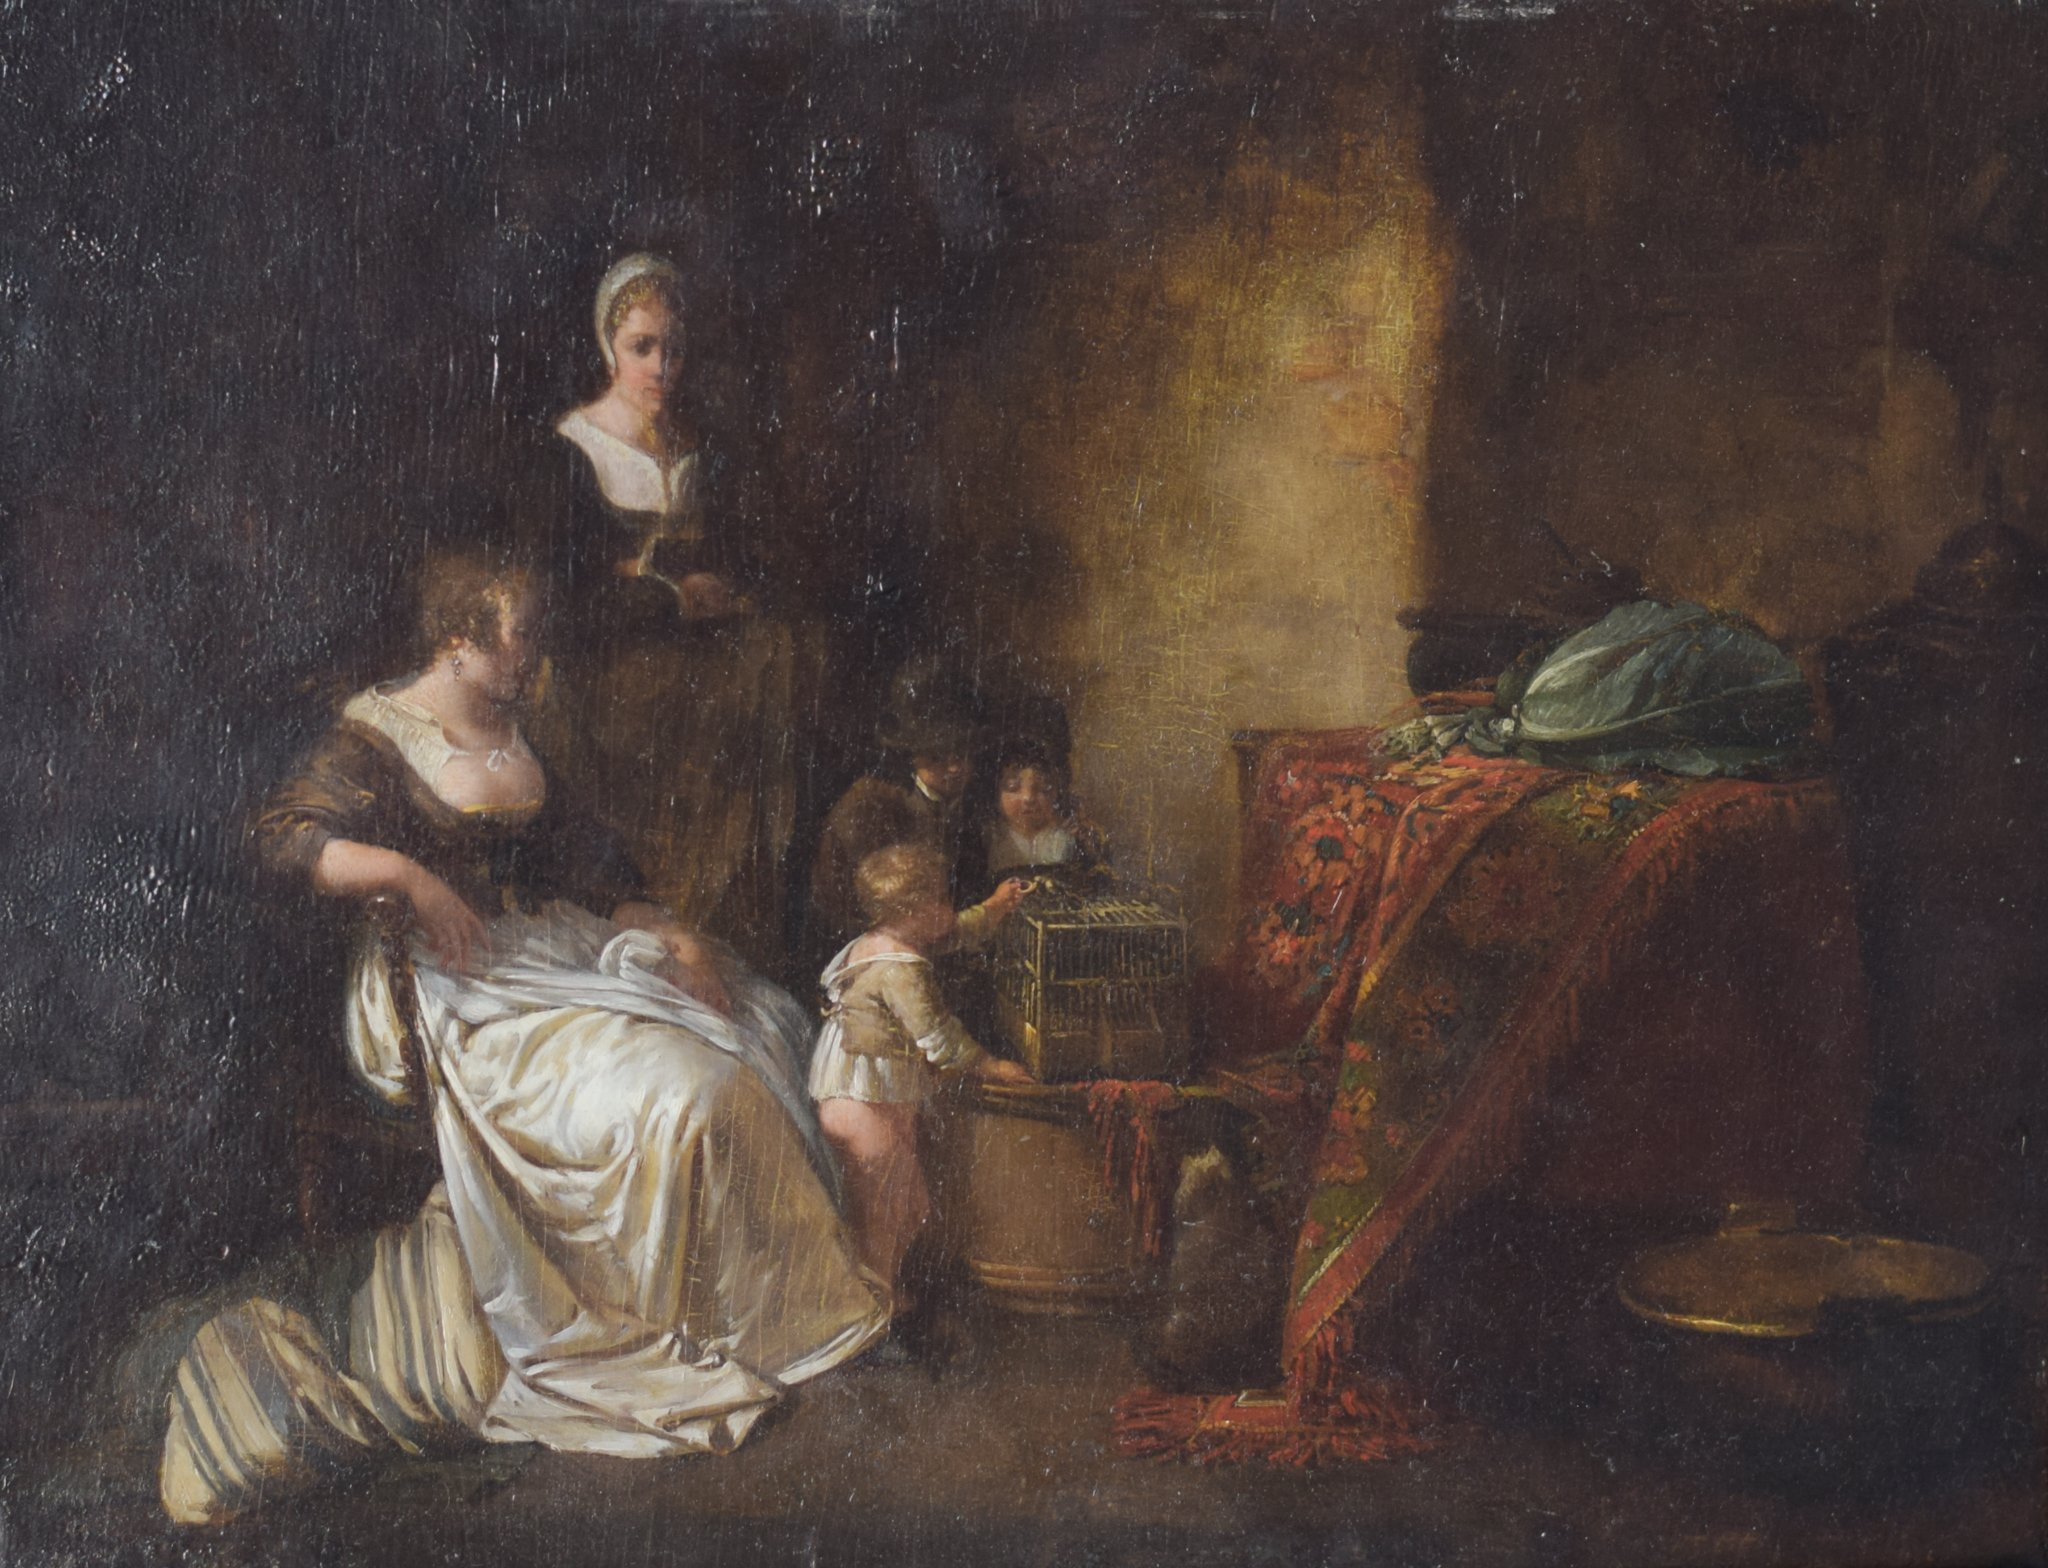 Old painting of domestic scene